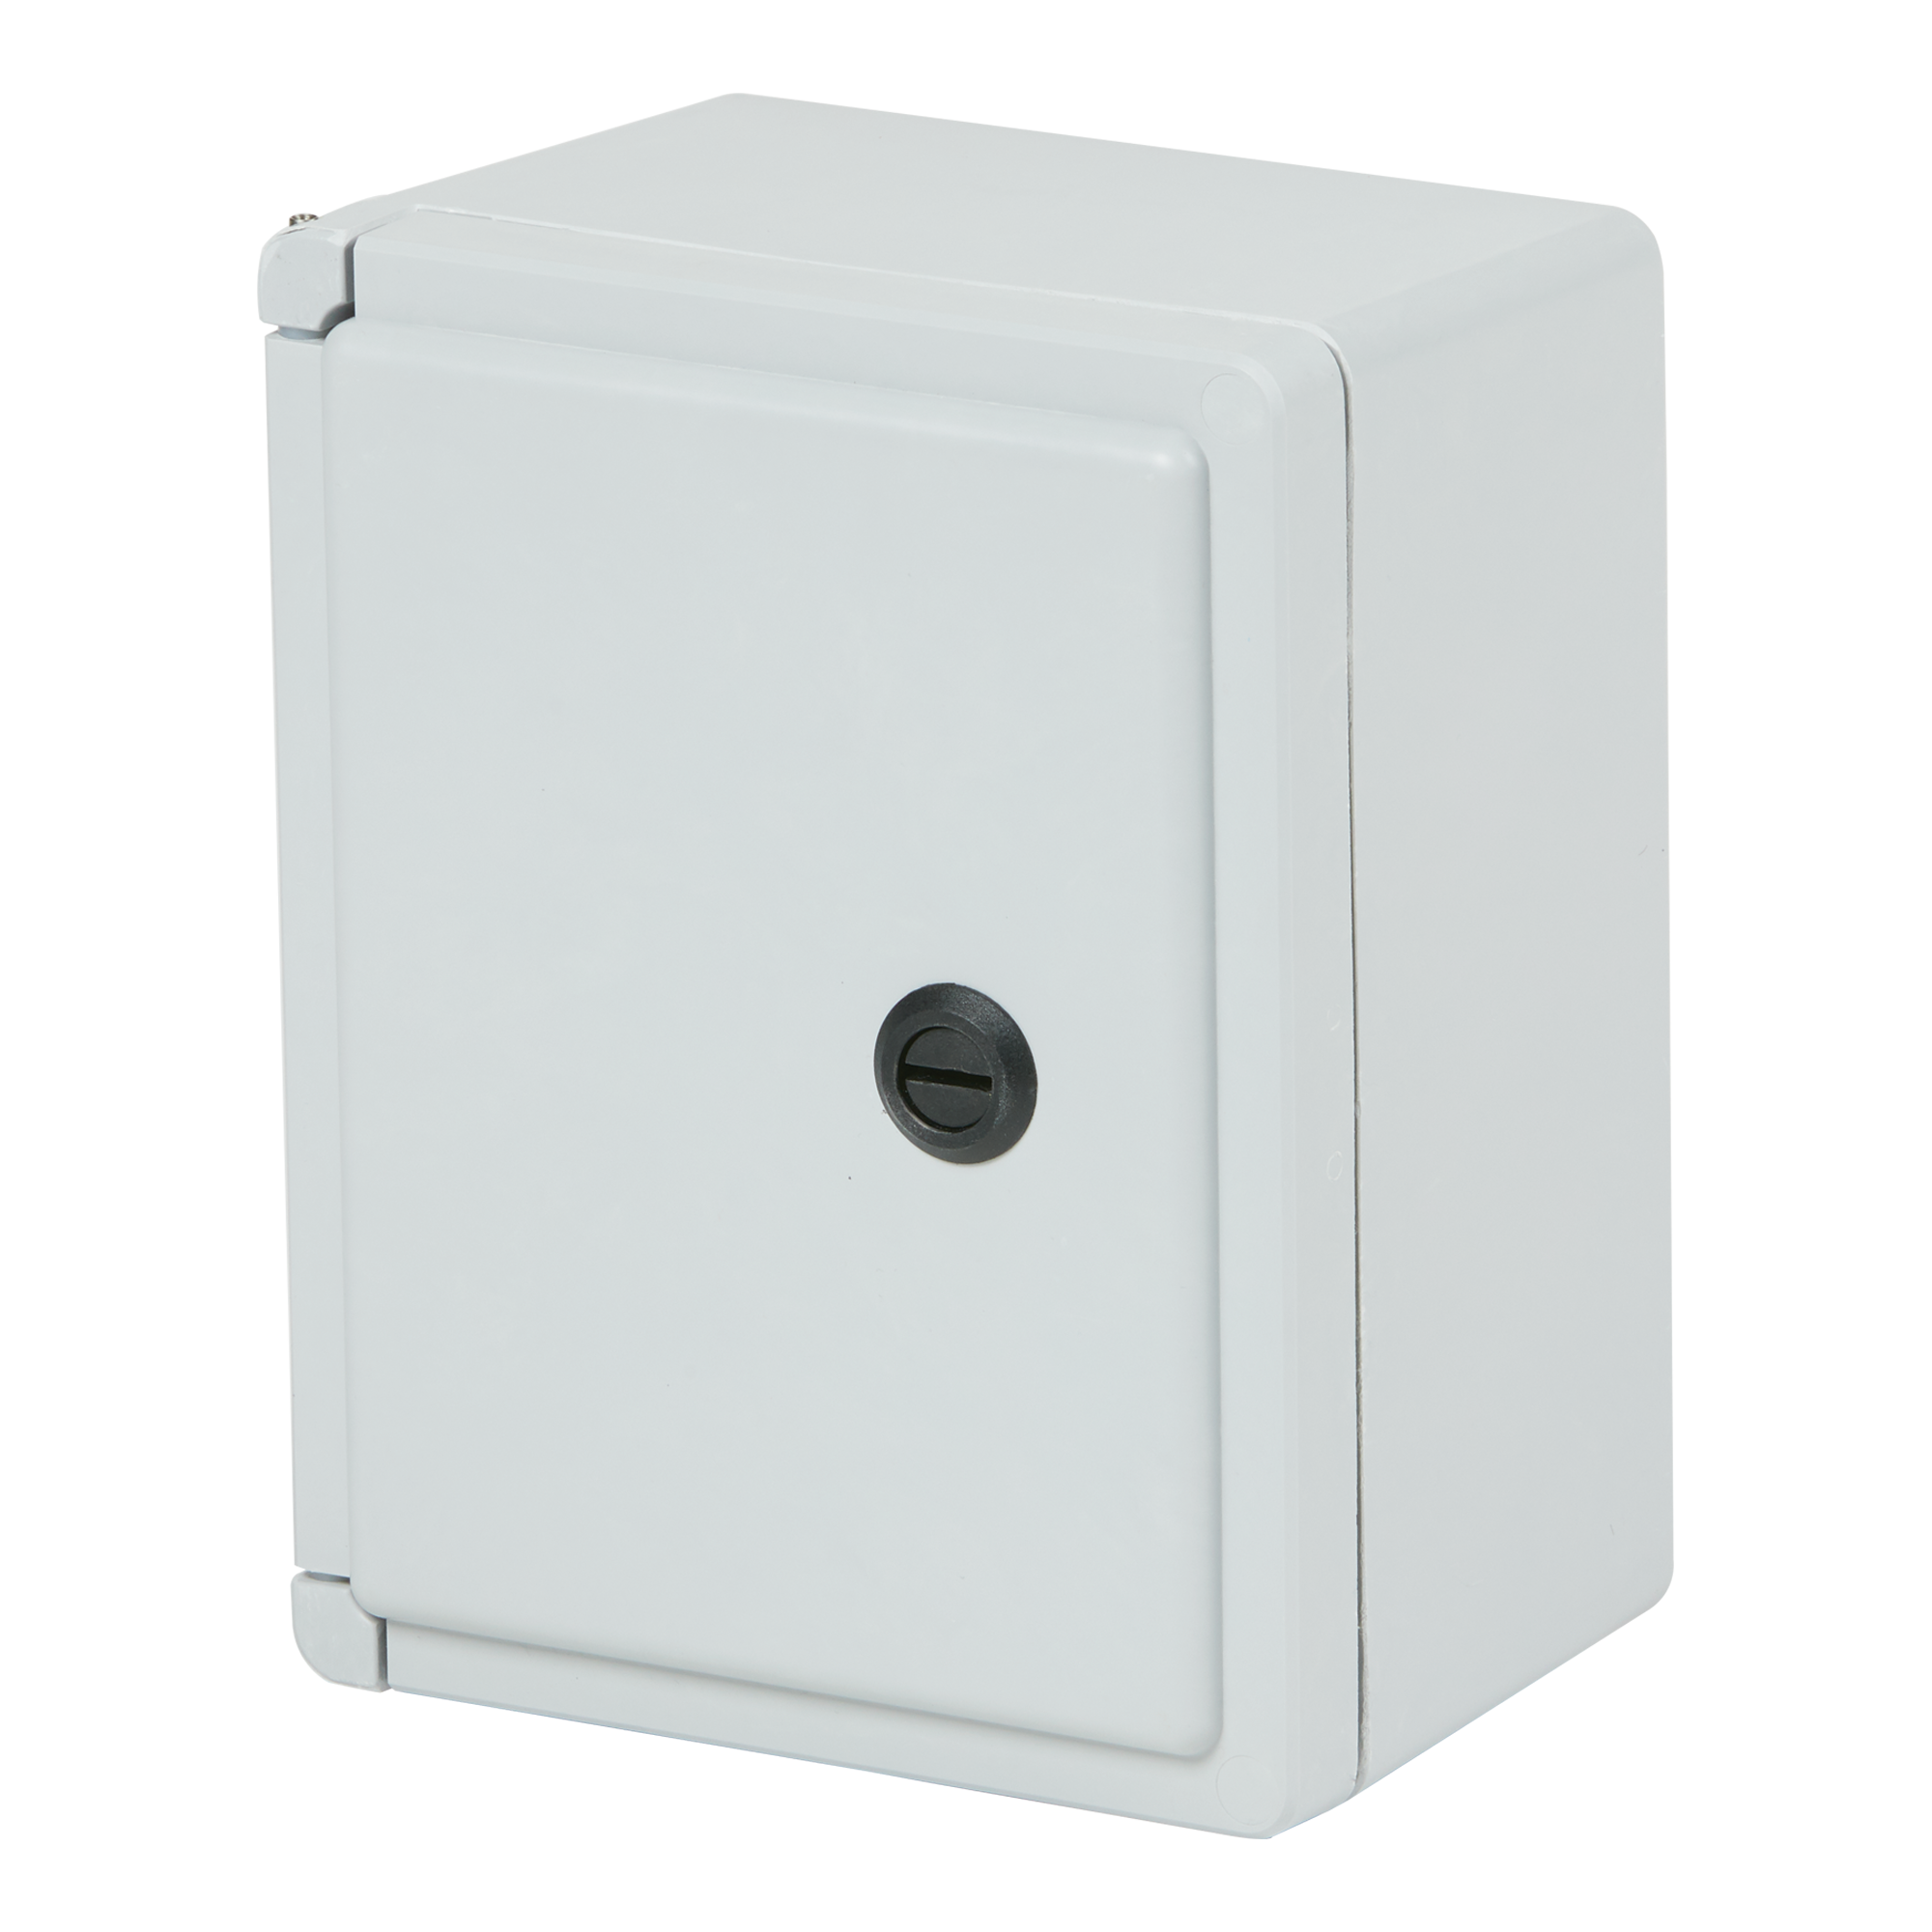 Classic 7 X 7 X 5 Inches Cl707hl Enclosure Stahlin